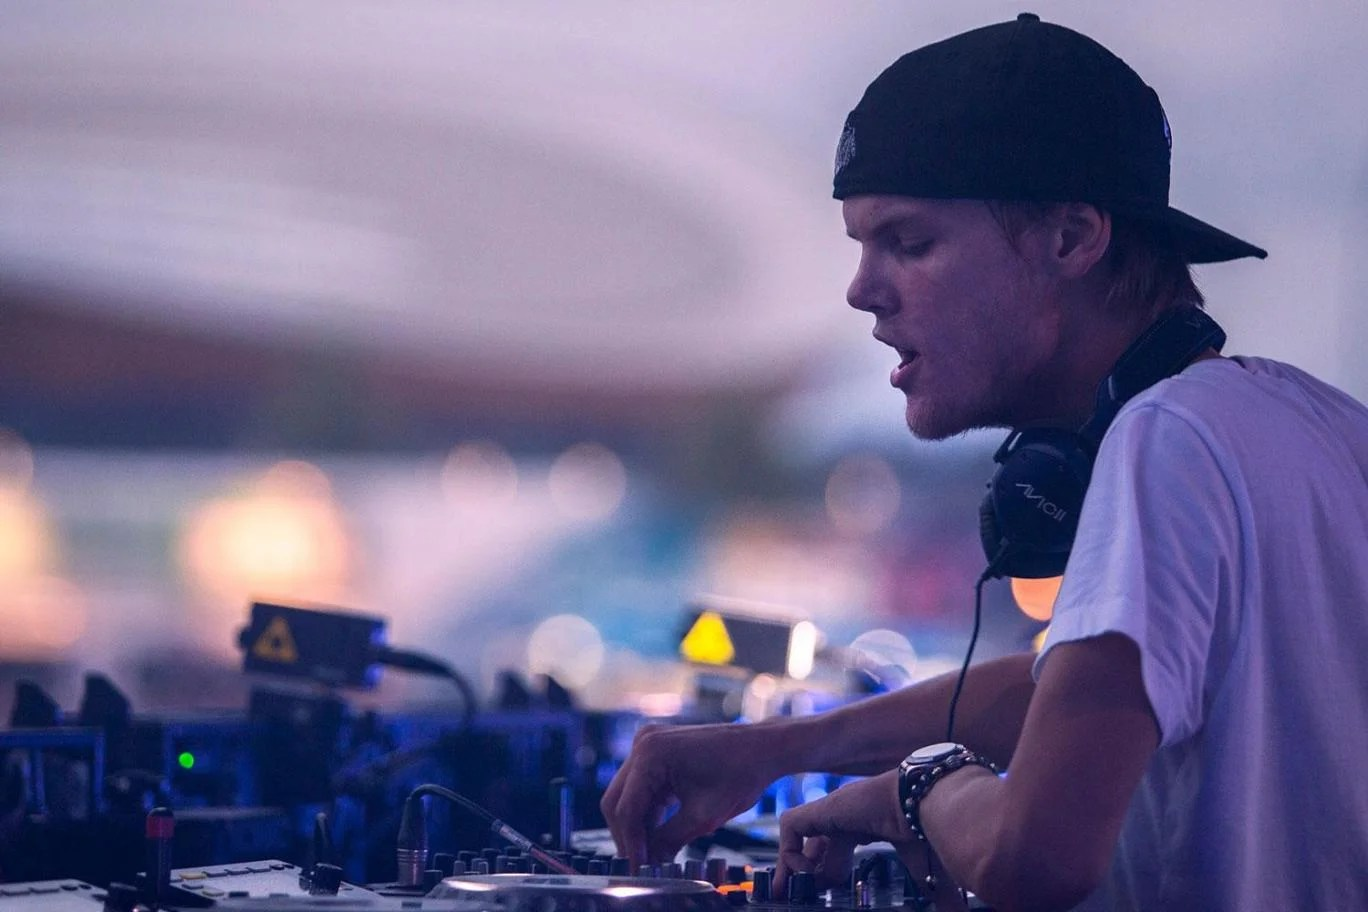 London Wallpaper Hd 1920x1080 Avicii Stories Album Review Aims Squarely For The